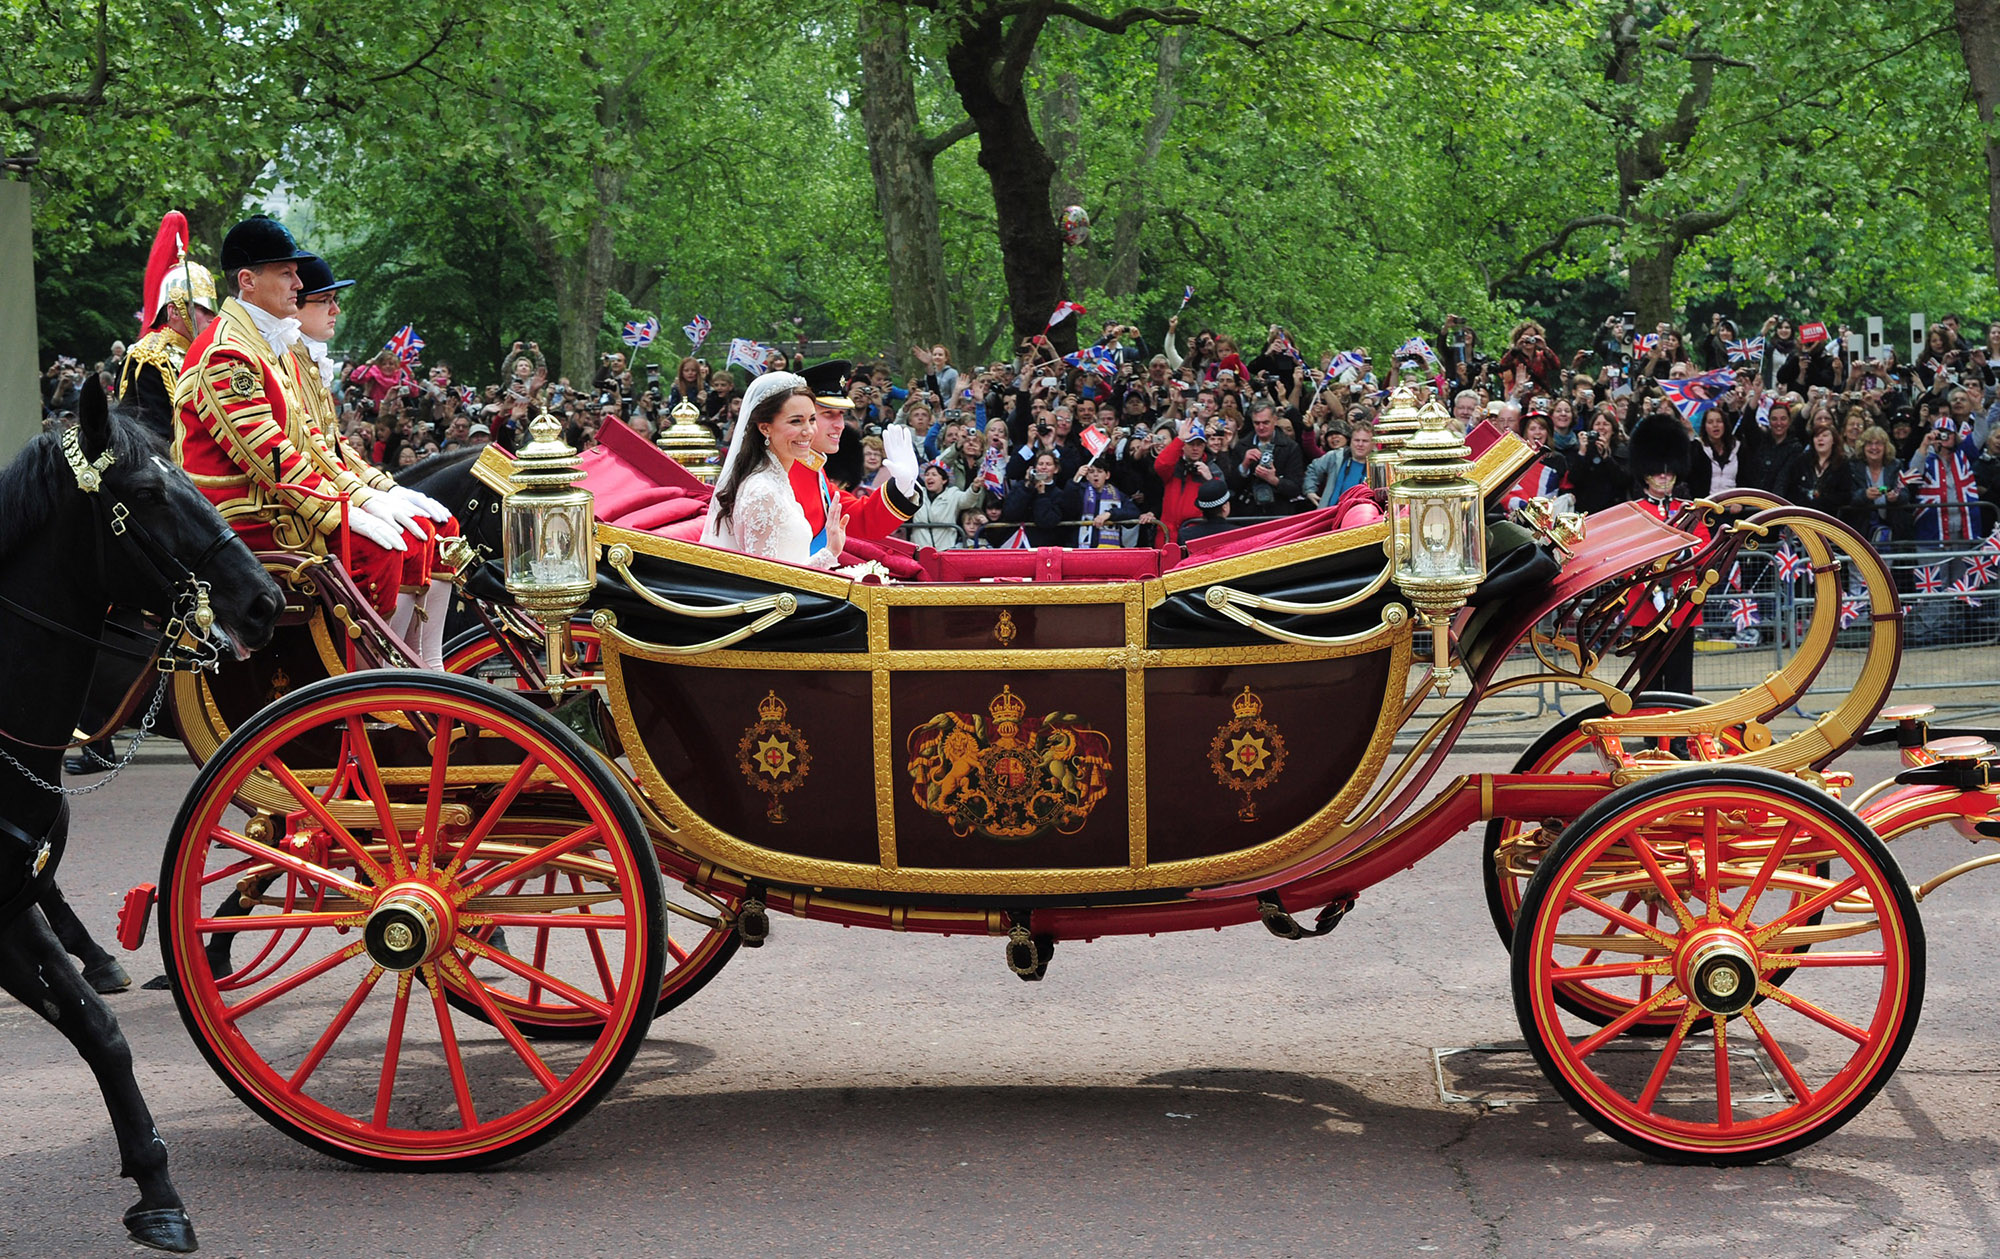 Prince William and Kate Middleton on their matrimony day carriage float in 2011.